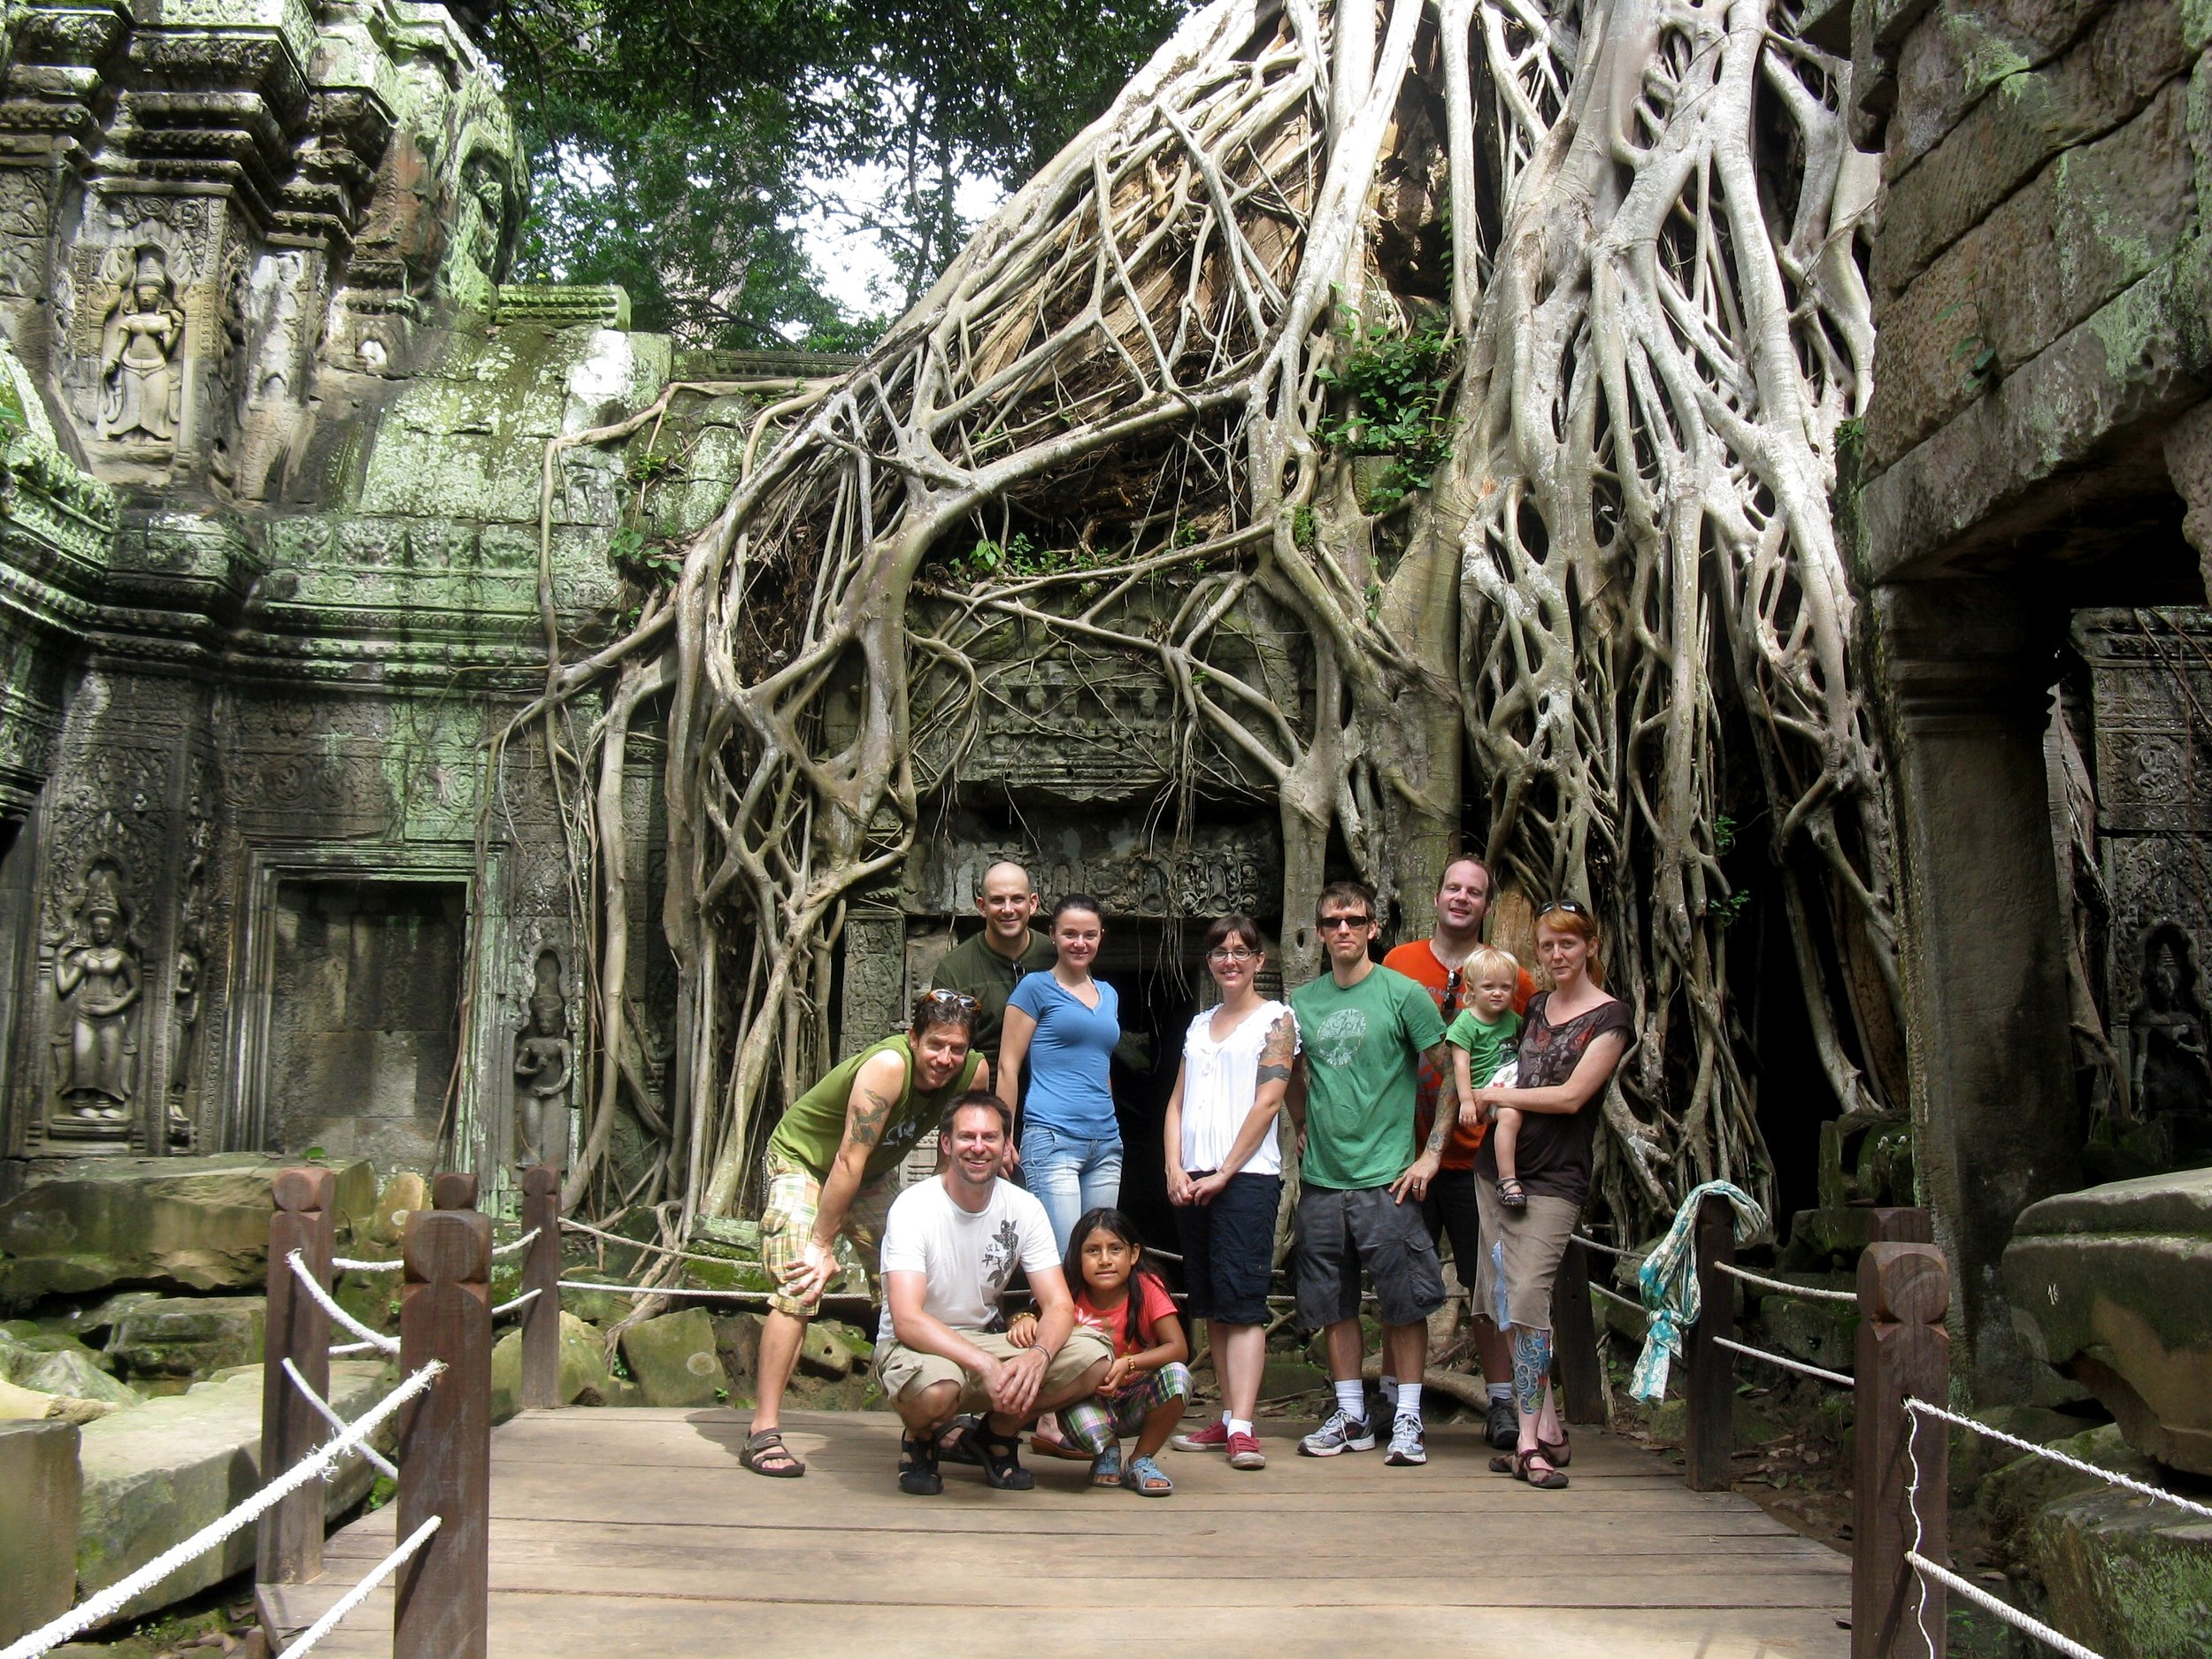 An obligatory photo of our group taken underneath the roots of the towering strangler fig tree in the inner courtyard at Ta Phrom, where Angelina Jolie's Lara Croft picked a jasmine flower before falling into the catacombs of the temple